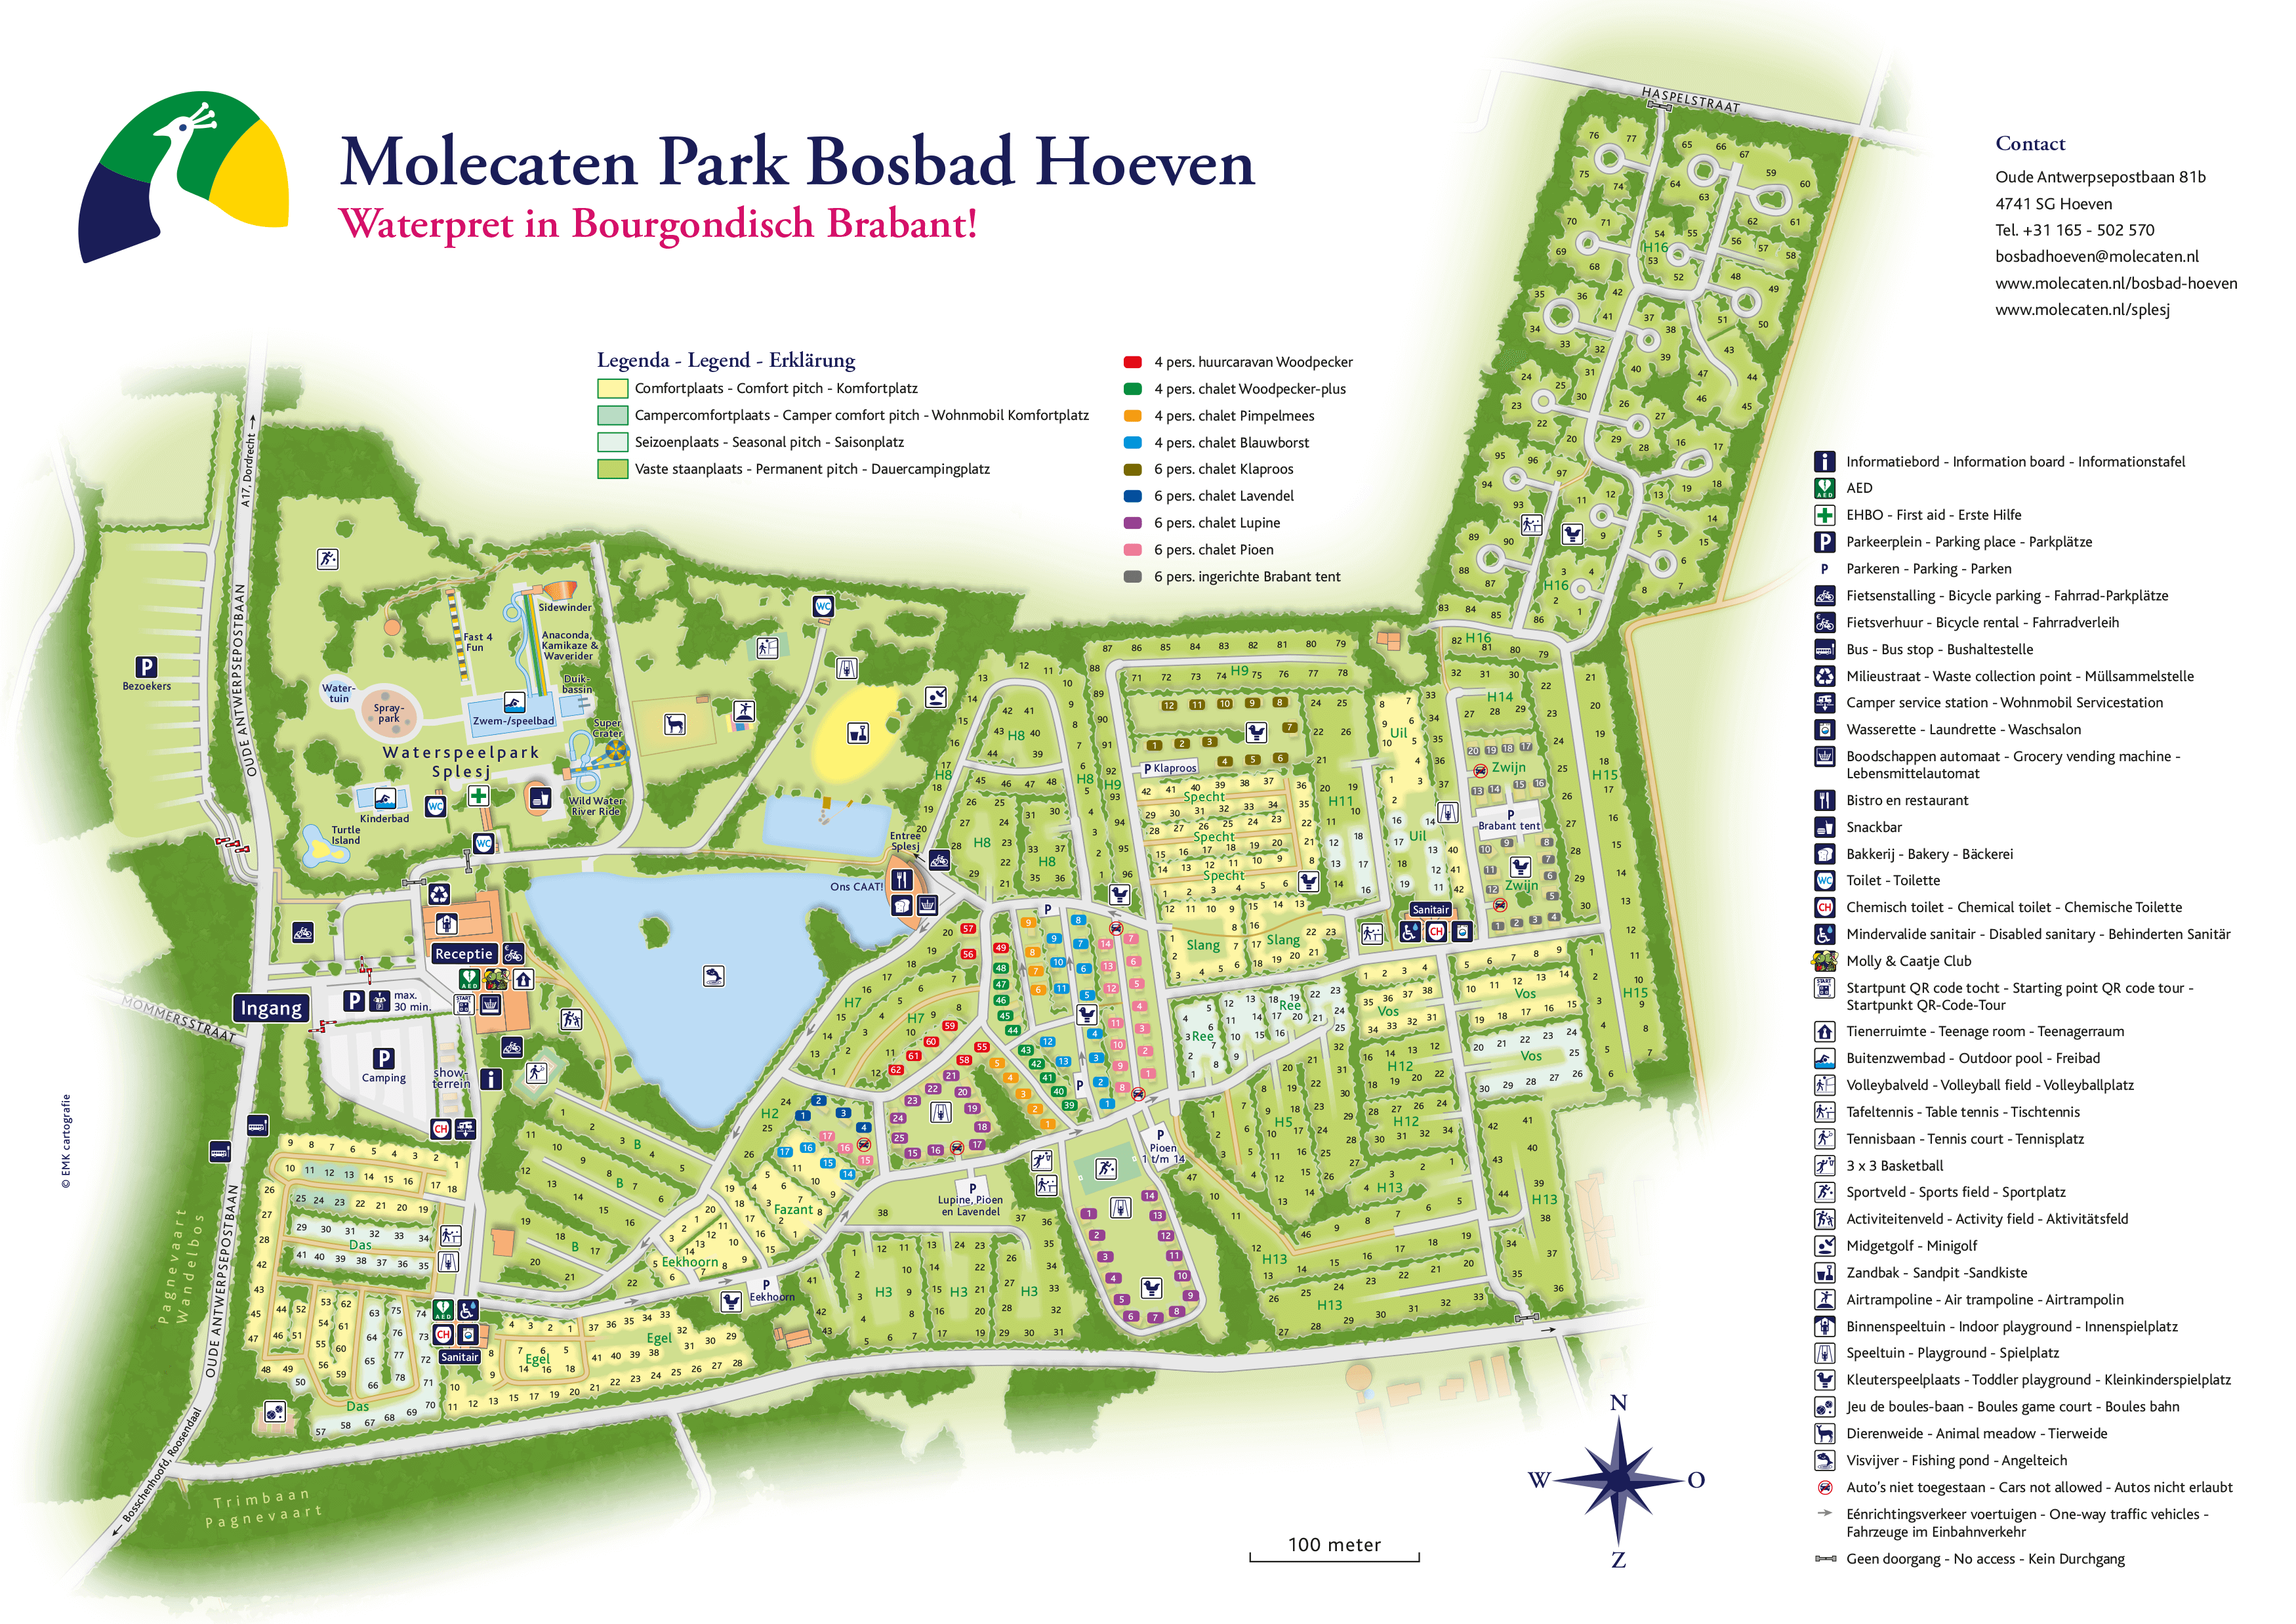 Molecaten Park Bosbad Hoeven accommodation.parkmap.alttext